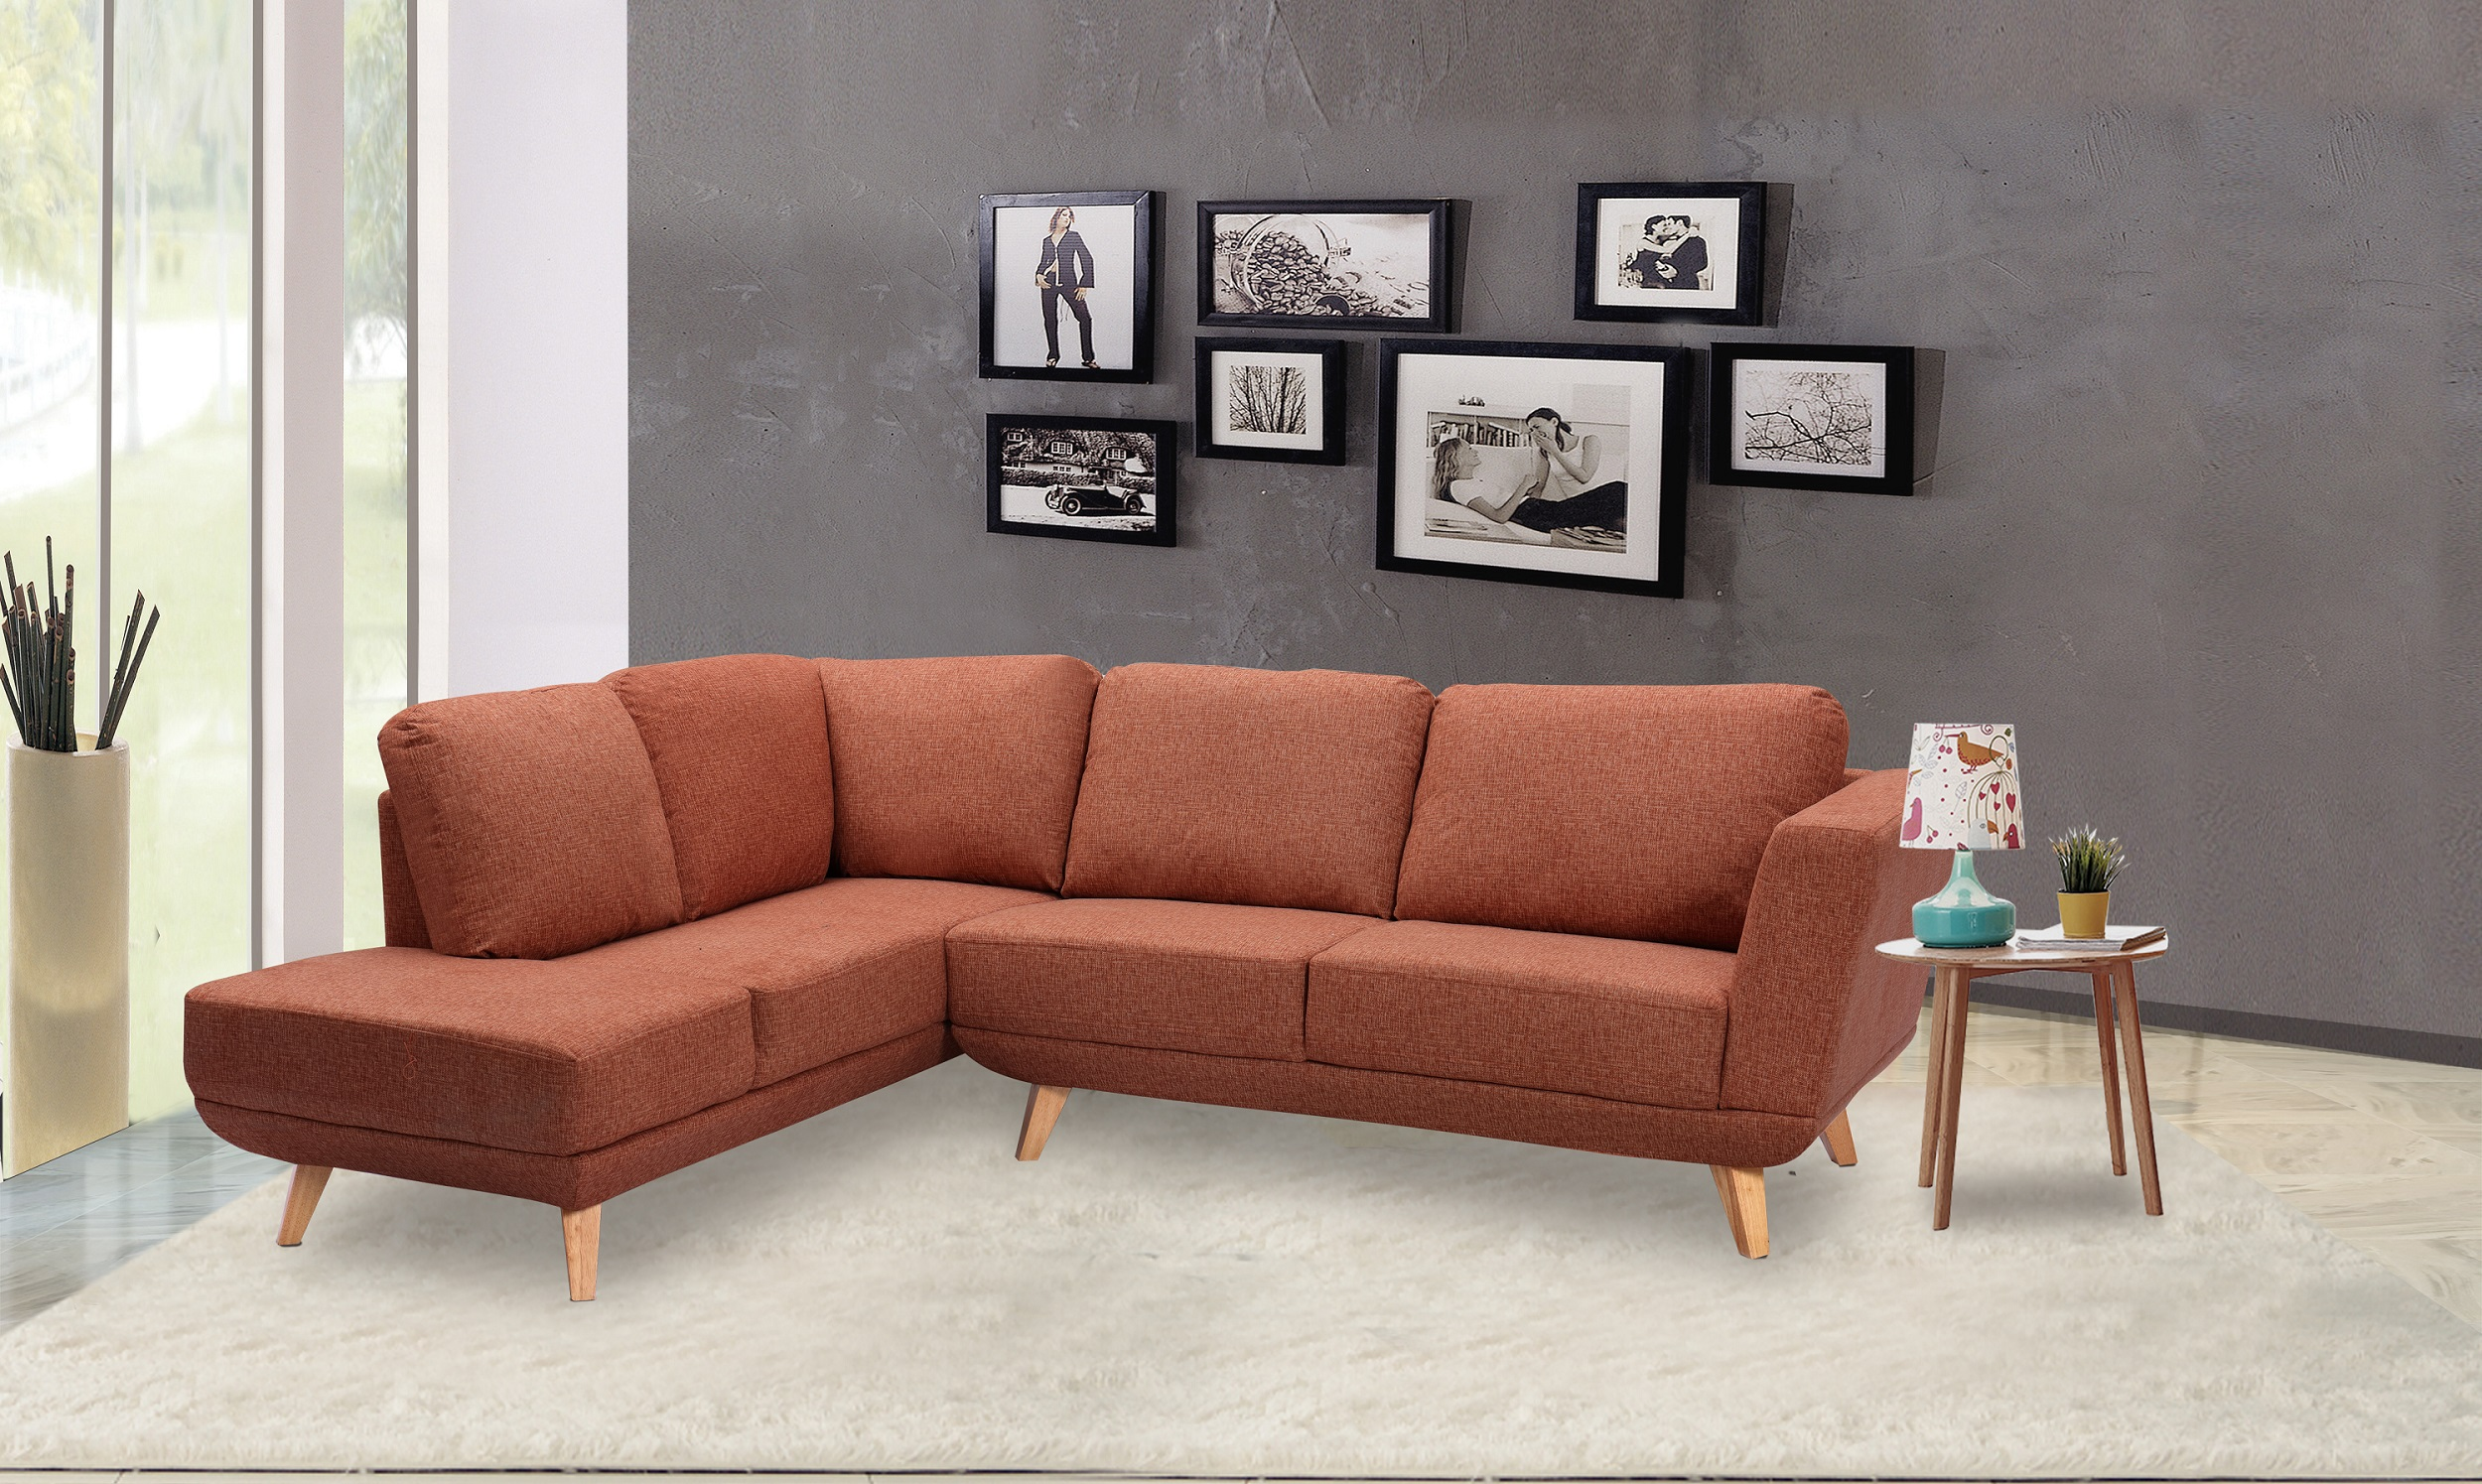 Contemporary Modern Comfort 2pc Sectional Sofa Orange Fabric Living Room  Furniture Sofa Chaise Cushion Couch